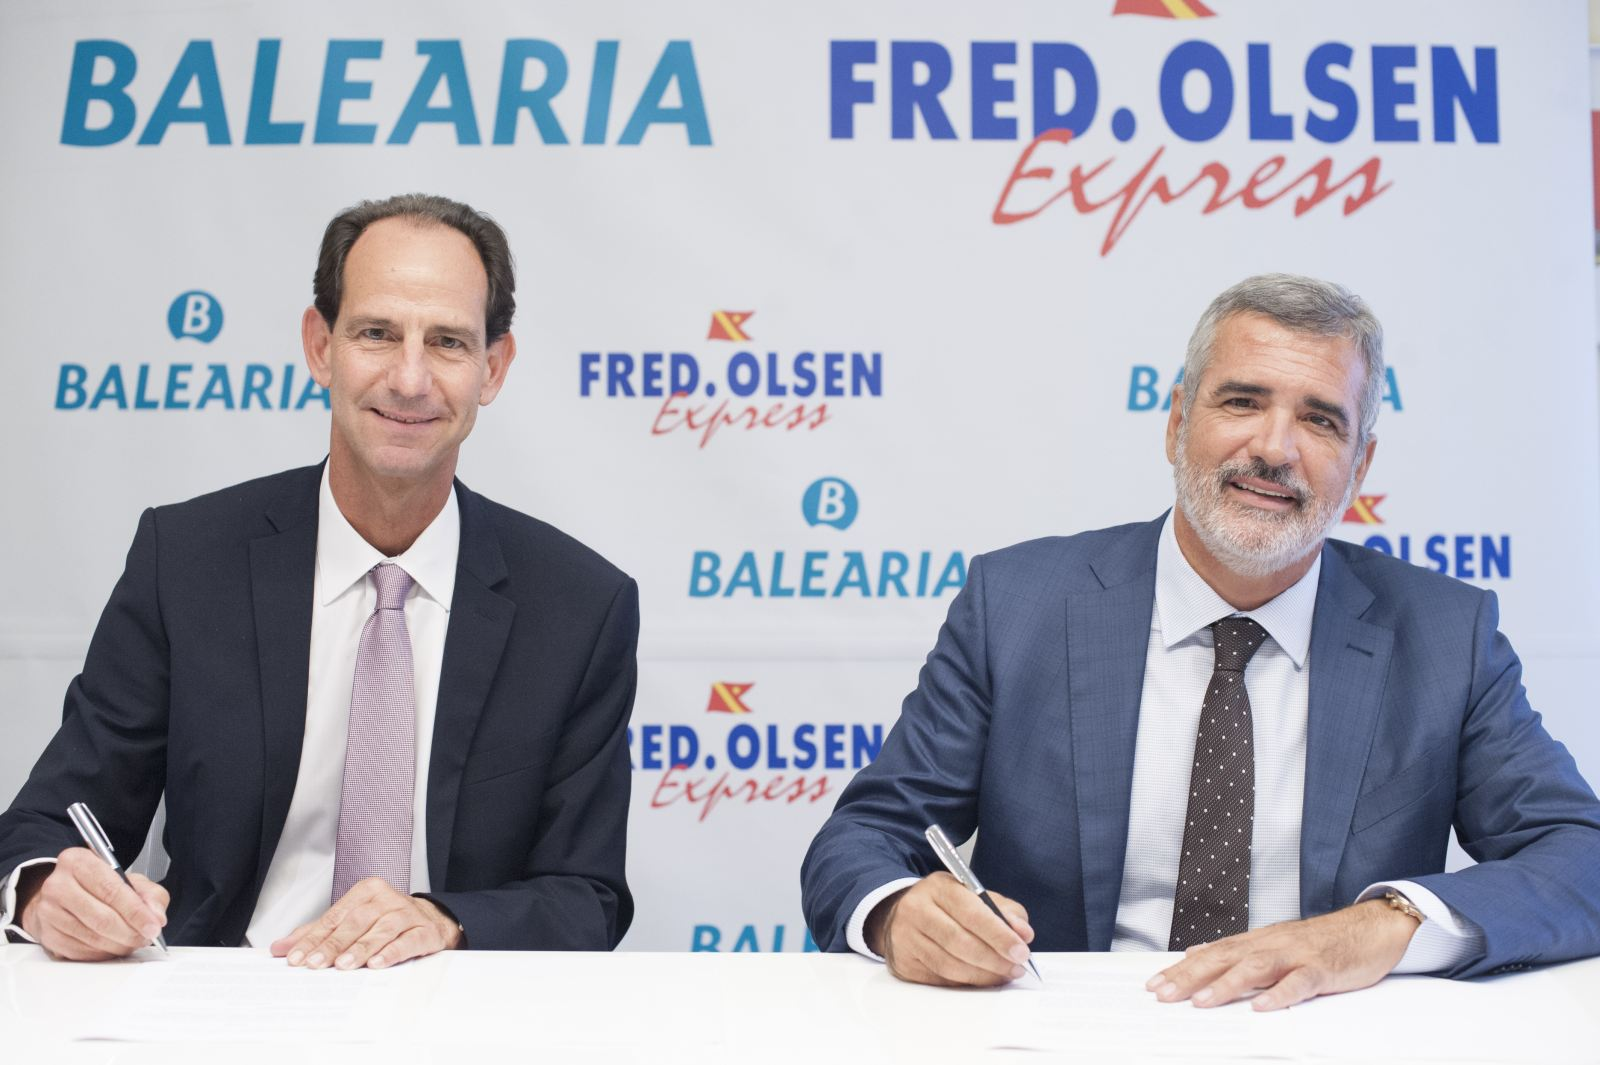 The Managing Director of Fred. Olsen Express, Andrés Marín, and the President of Baleària, Adolfo Utor